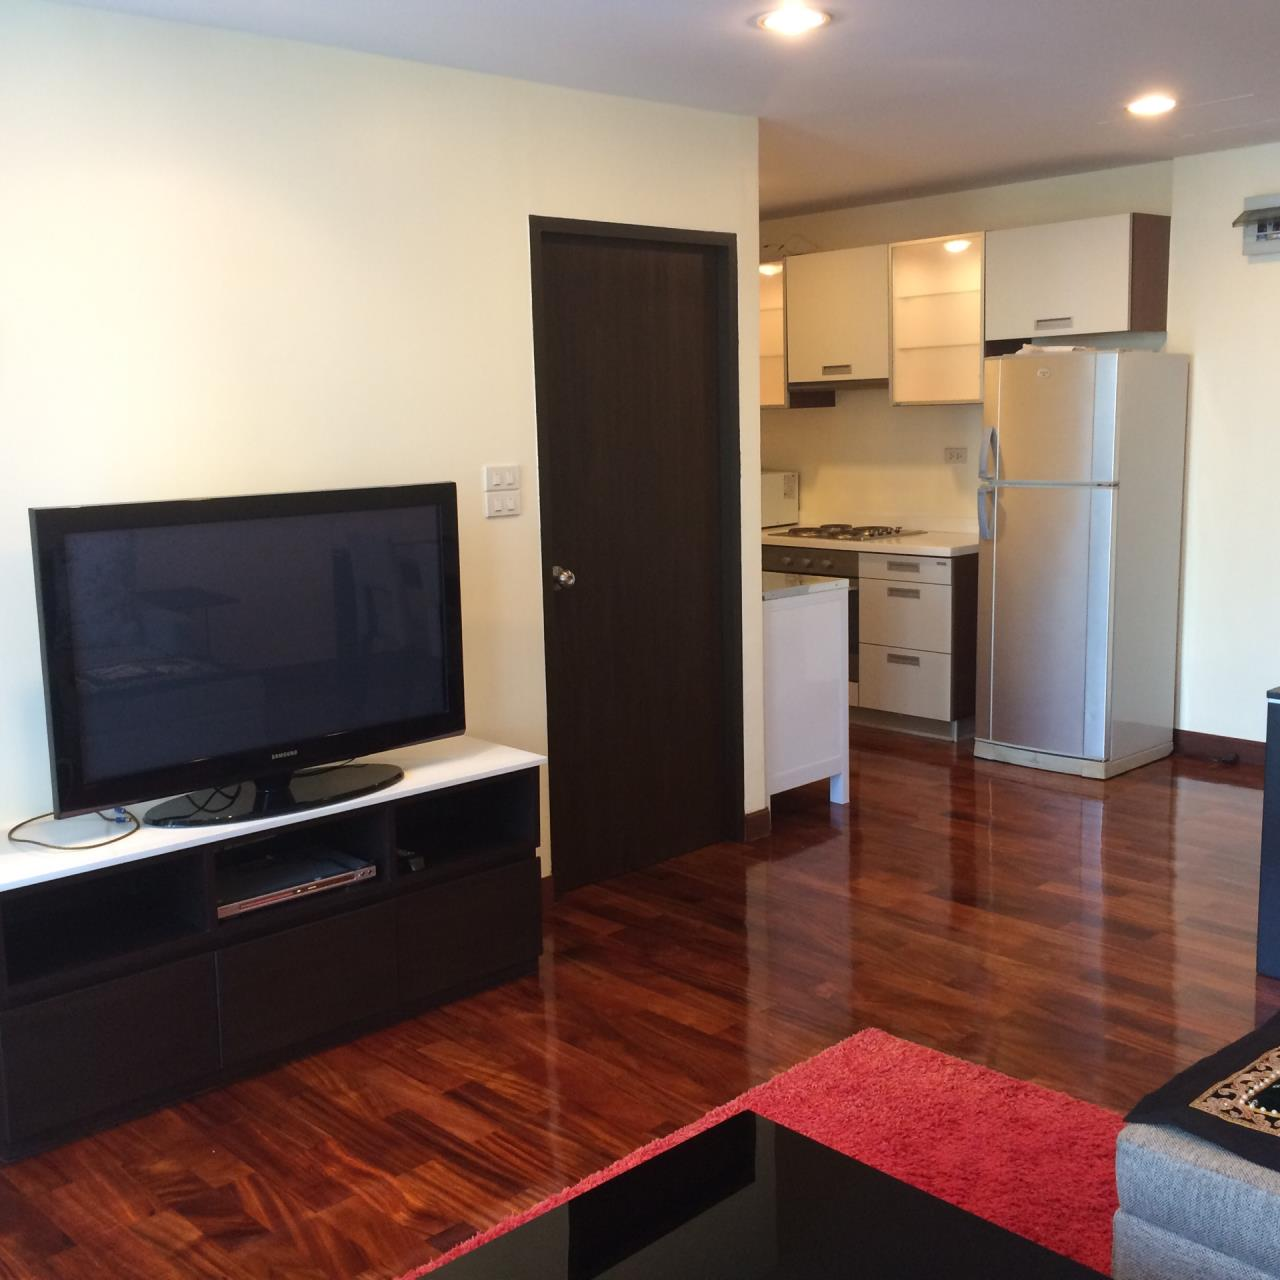 Quality Life Property Agency's 2-BEDROOM CONDO FOR RENT IN URBANA LANGSUAN 9 FOOR 7